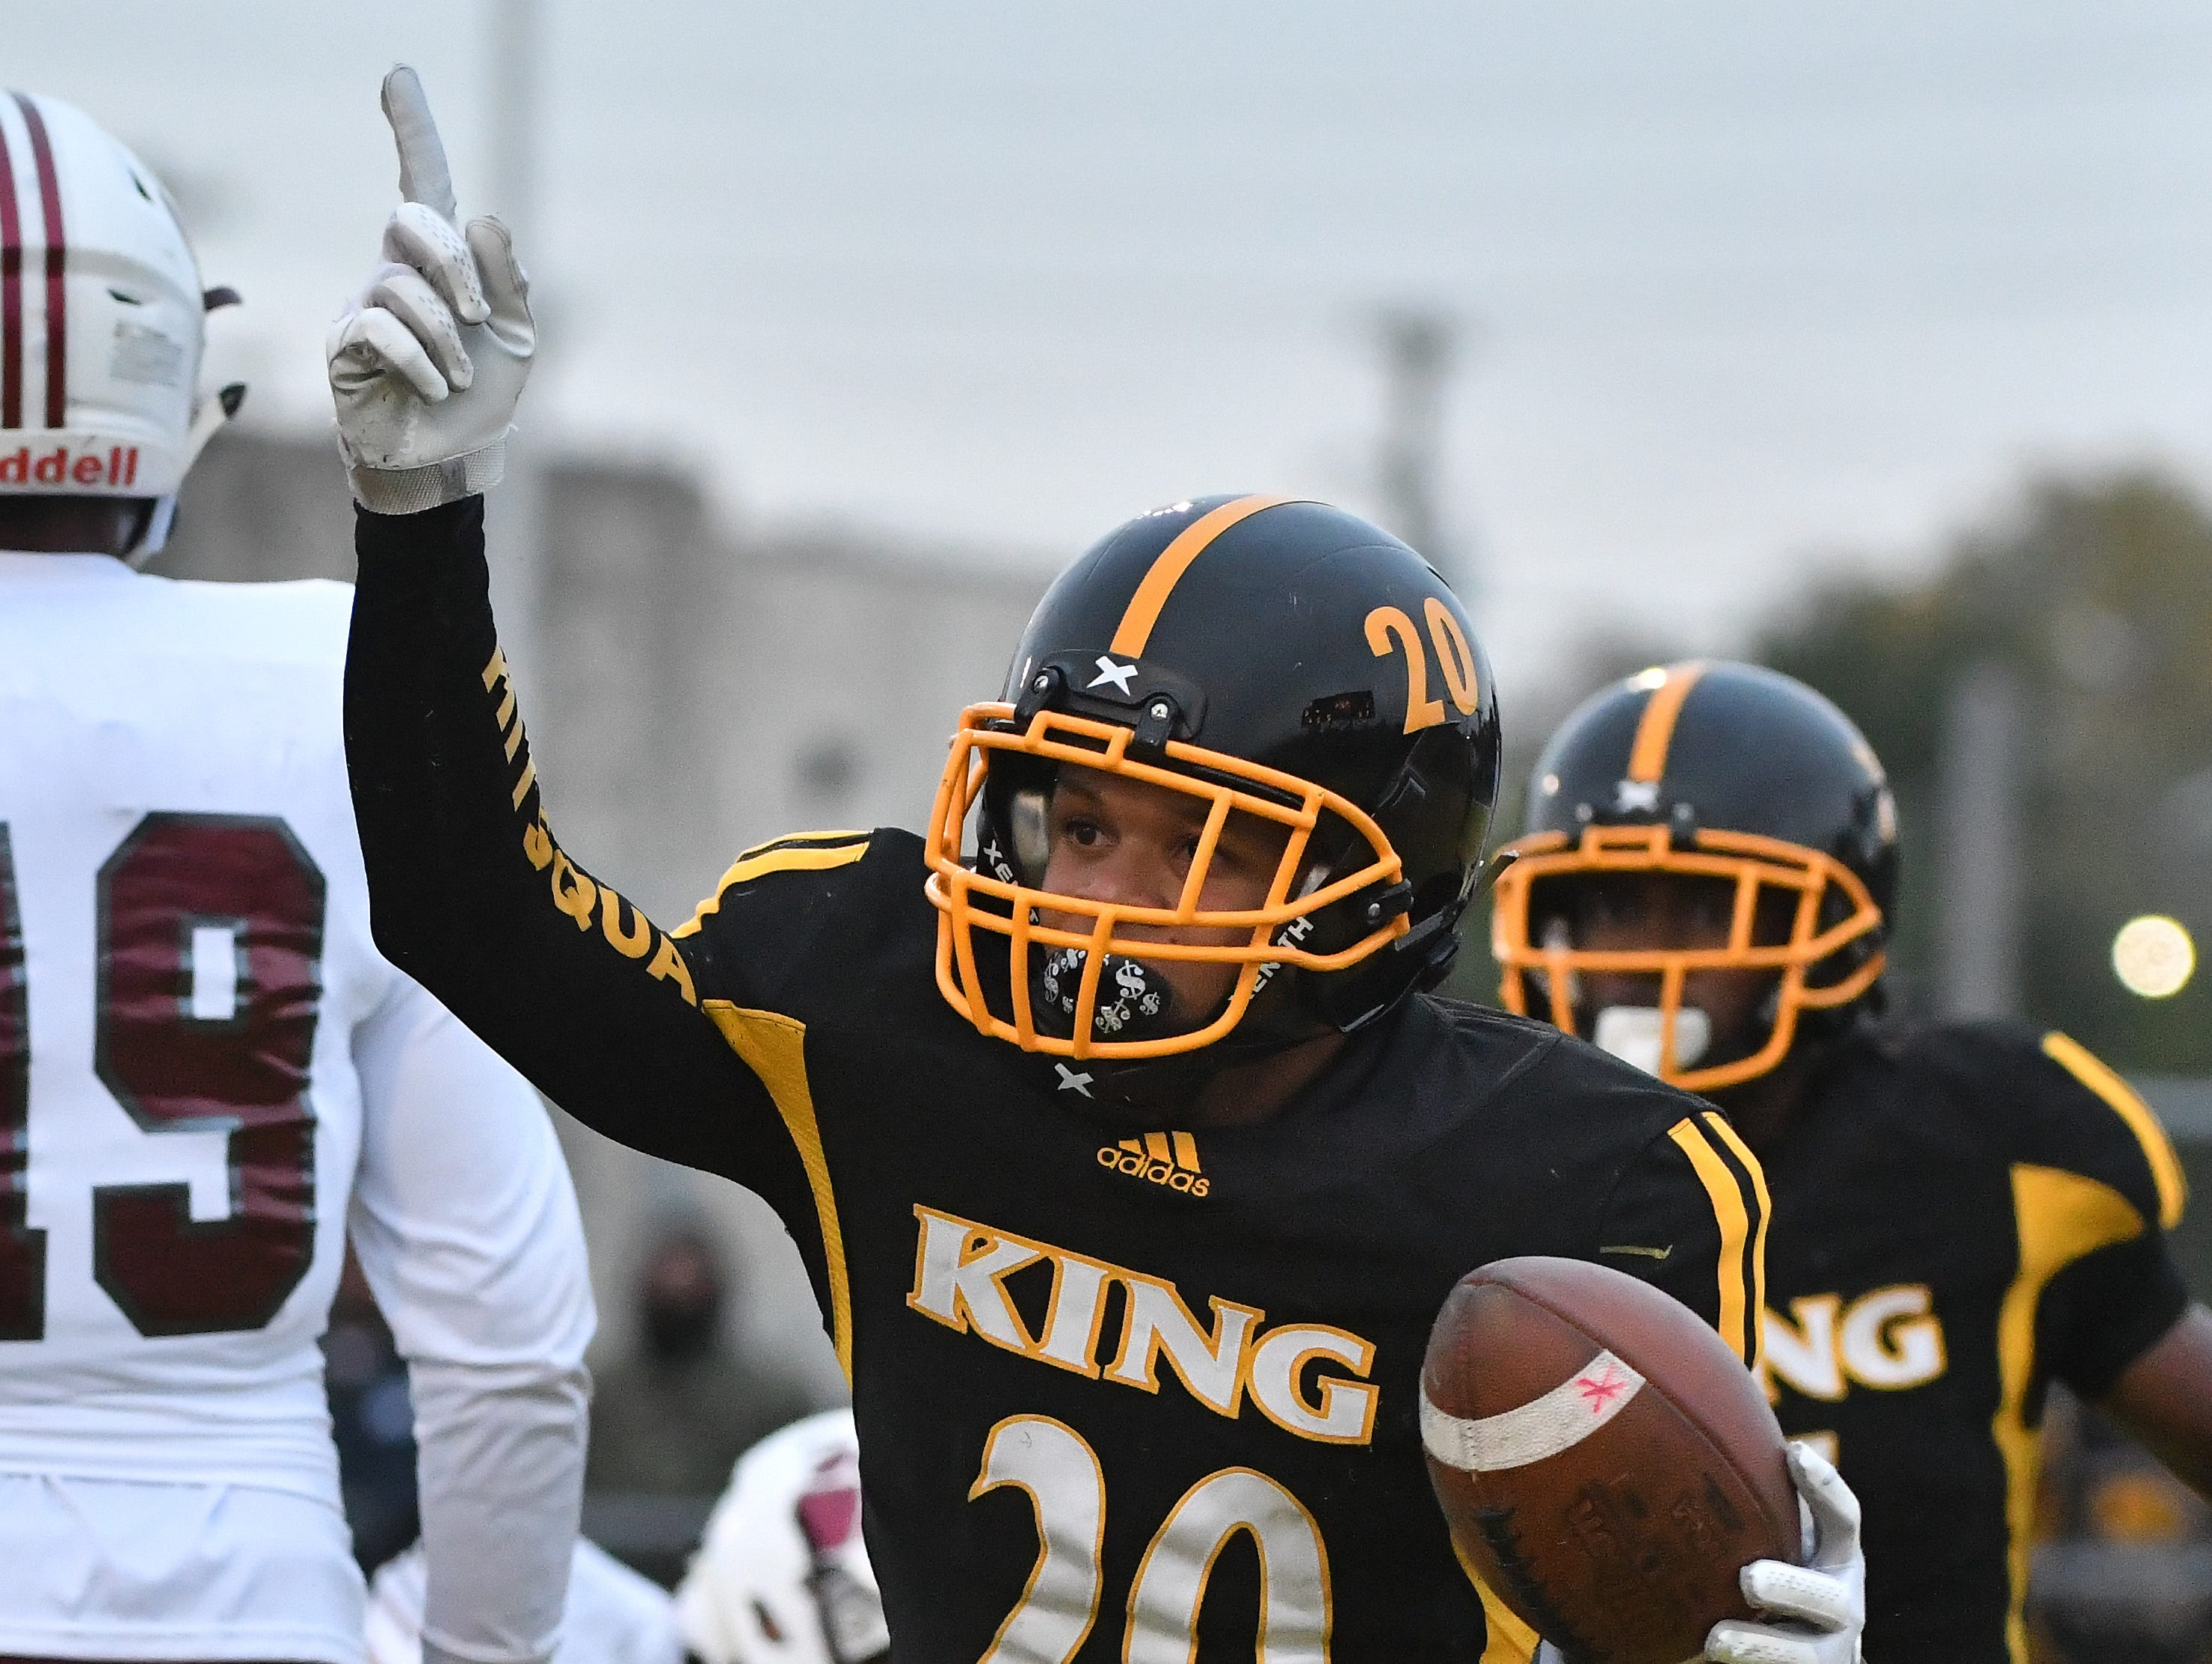 King's Jaylen Reed celebrates after recovering a fumble by River Rouge quarterback Emmanuel Ferguson in the endzone in the second quarter.